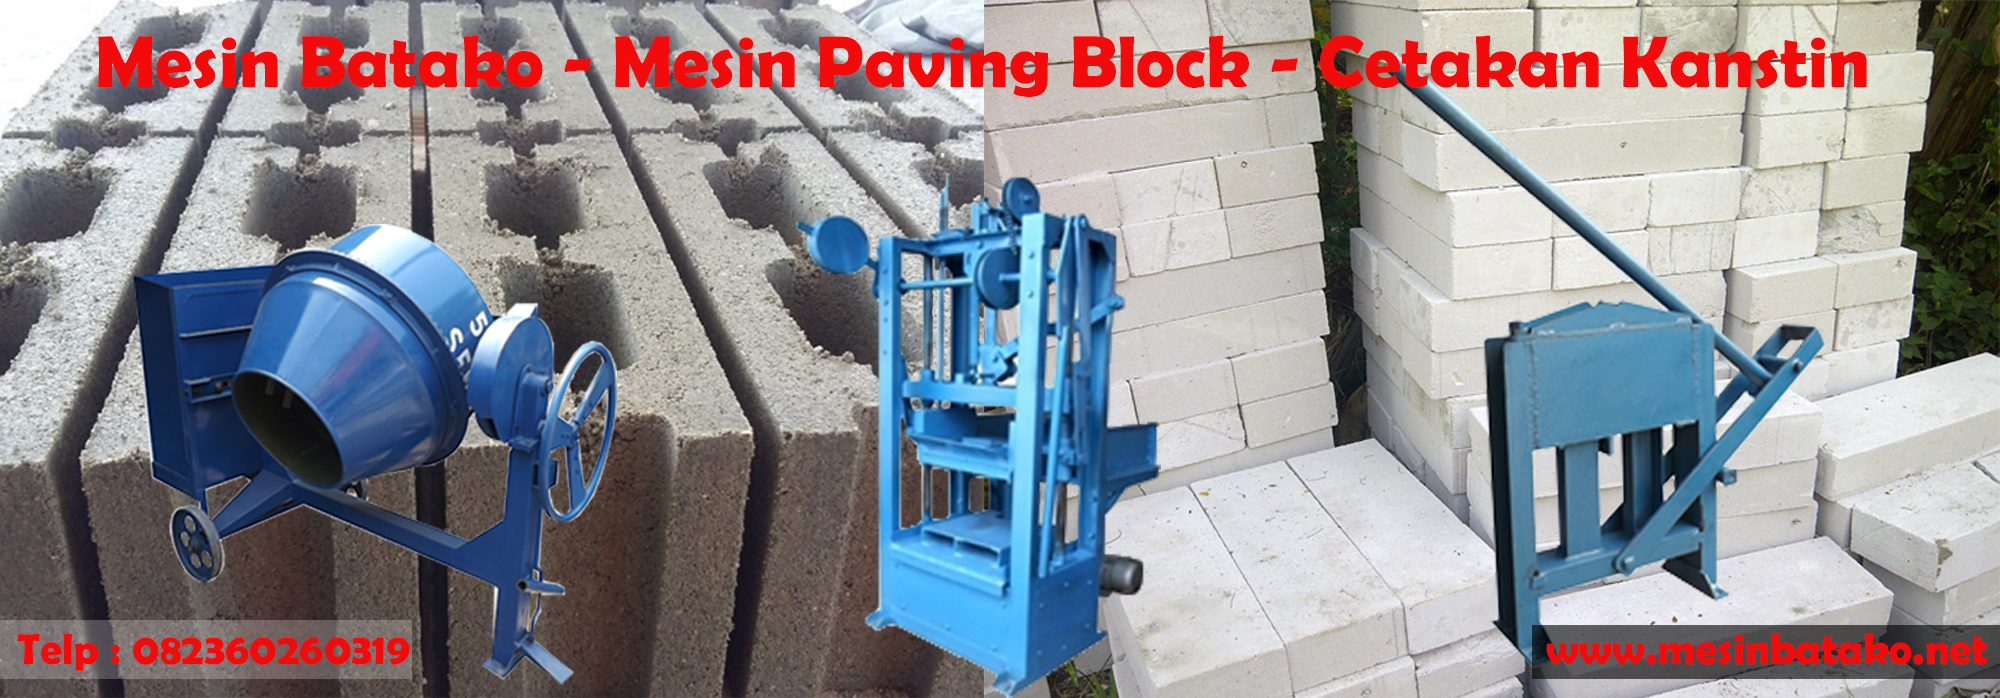 Mesin Press Batako | Mesin Paving Block | Cetakan Kanstin